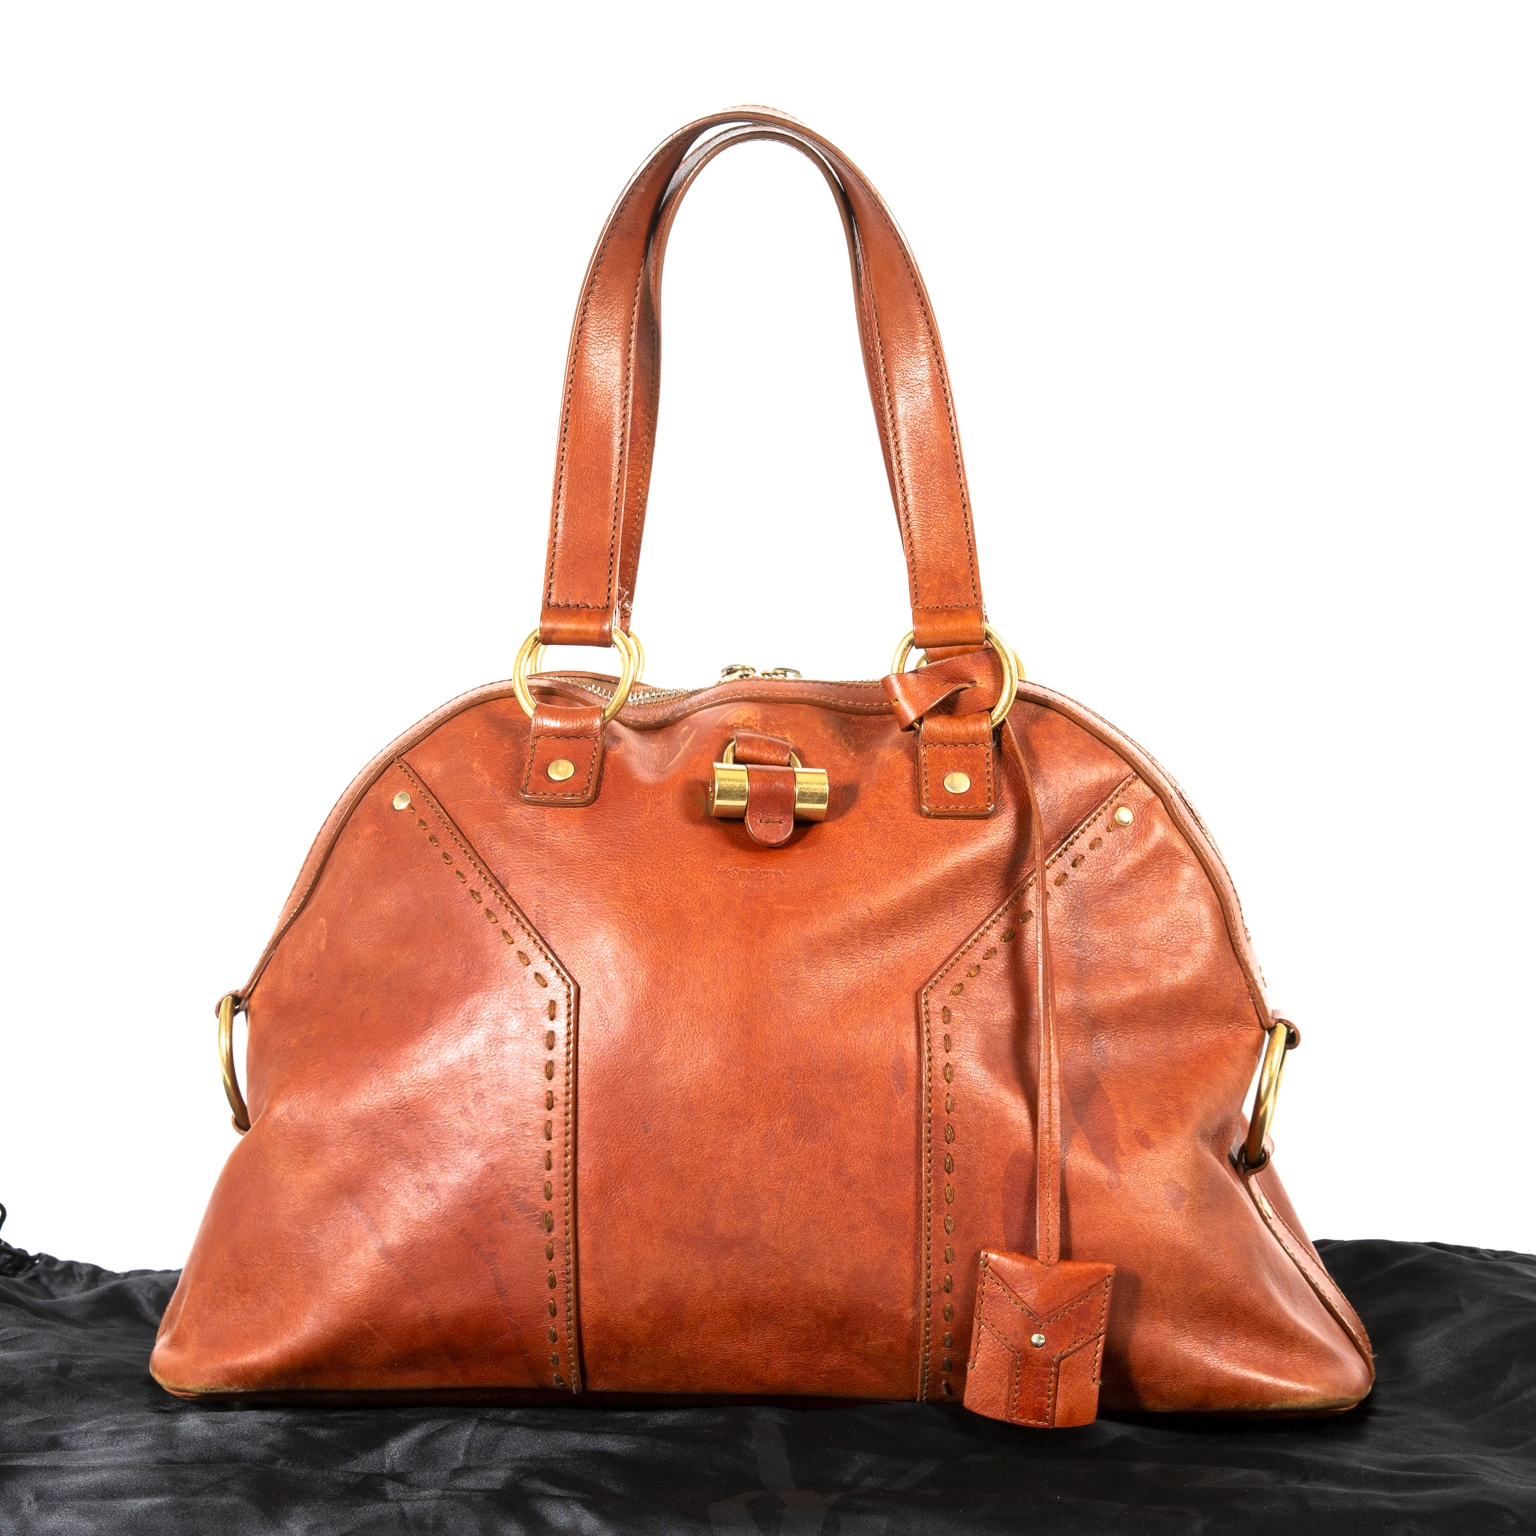 9b8c89befc14 ... Yves Saint Laurent Muse One Bourbon Leather Bag now for sale at  labellov vintage fashion webshop